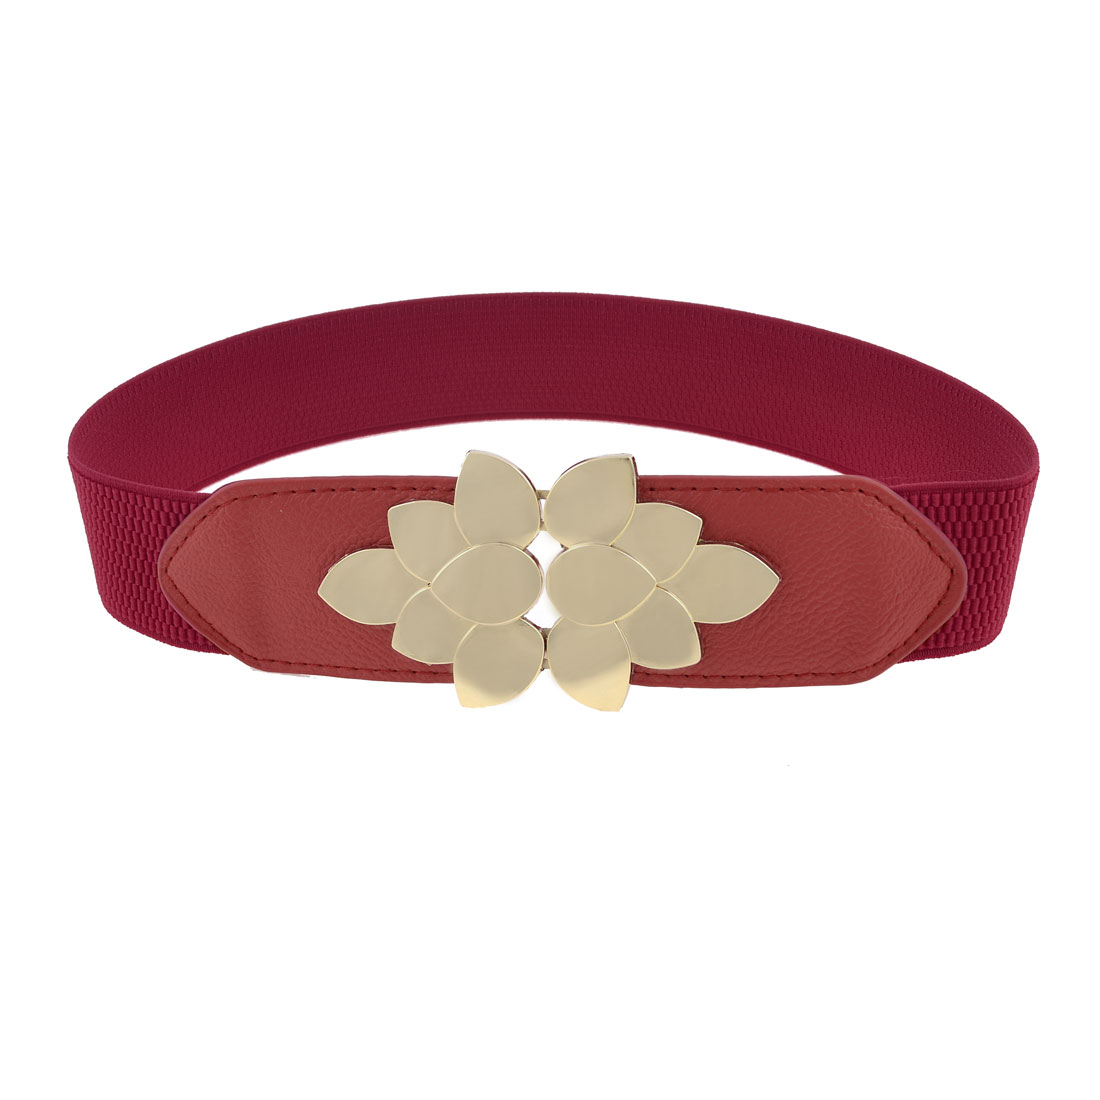 Woman Gold Tone Lutos Design Interlocking Buckle Red Stretchy Cinch Waist Belt